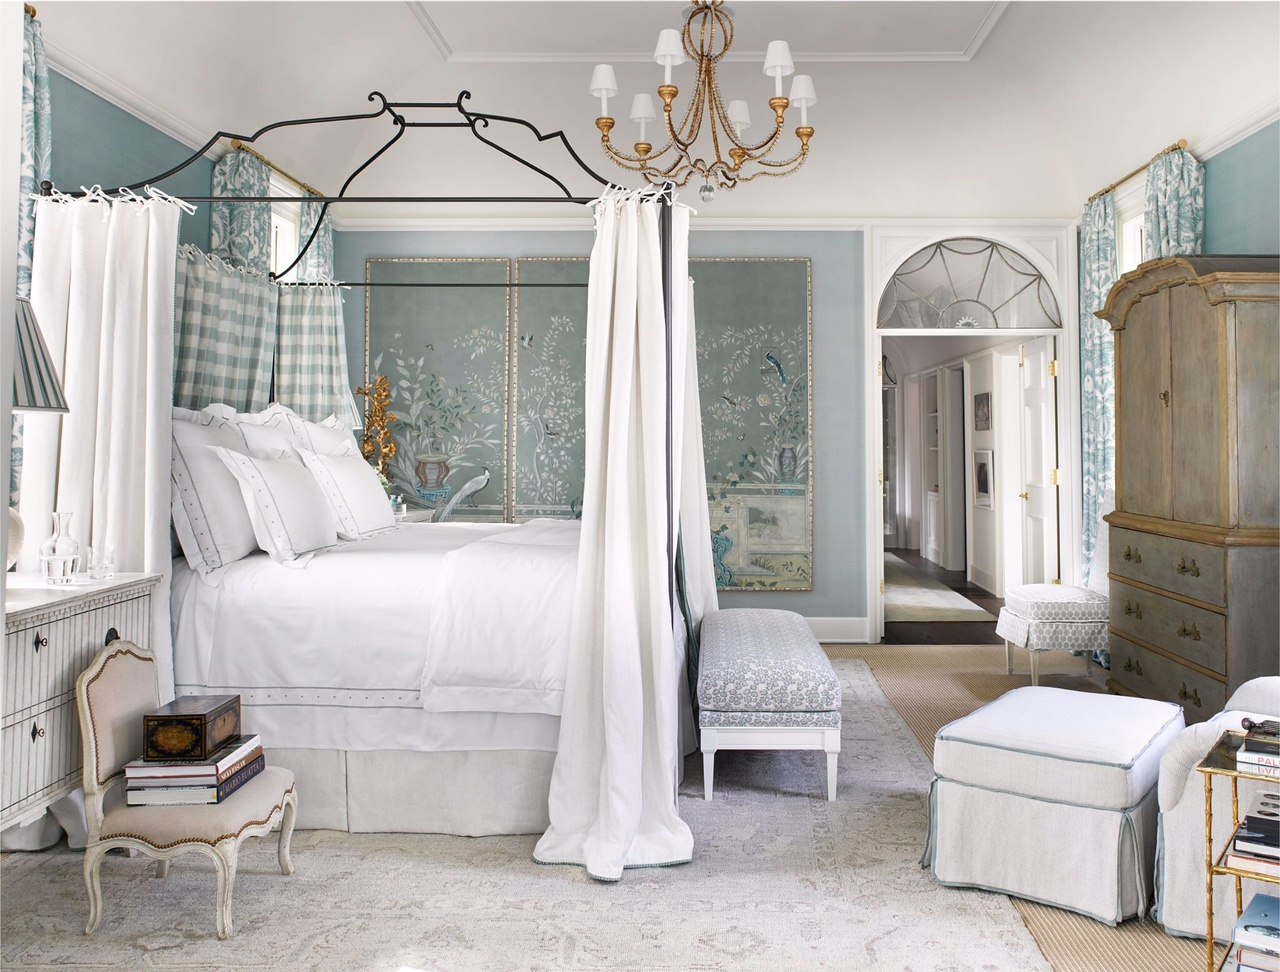 Showhouse Bedroom Ideas: SOUTHEASTERN DESIGNER SHOWHOUSE & GARDENS 2017 PART 2